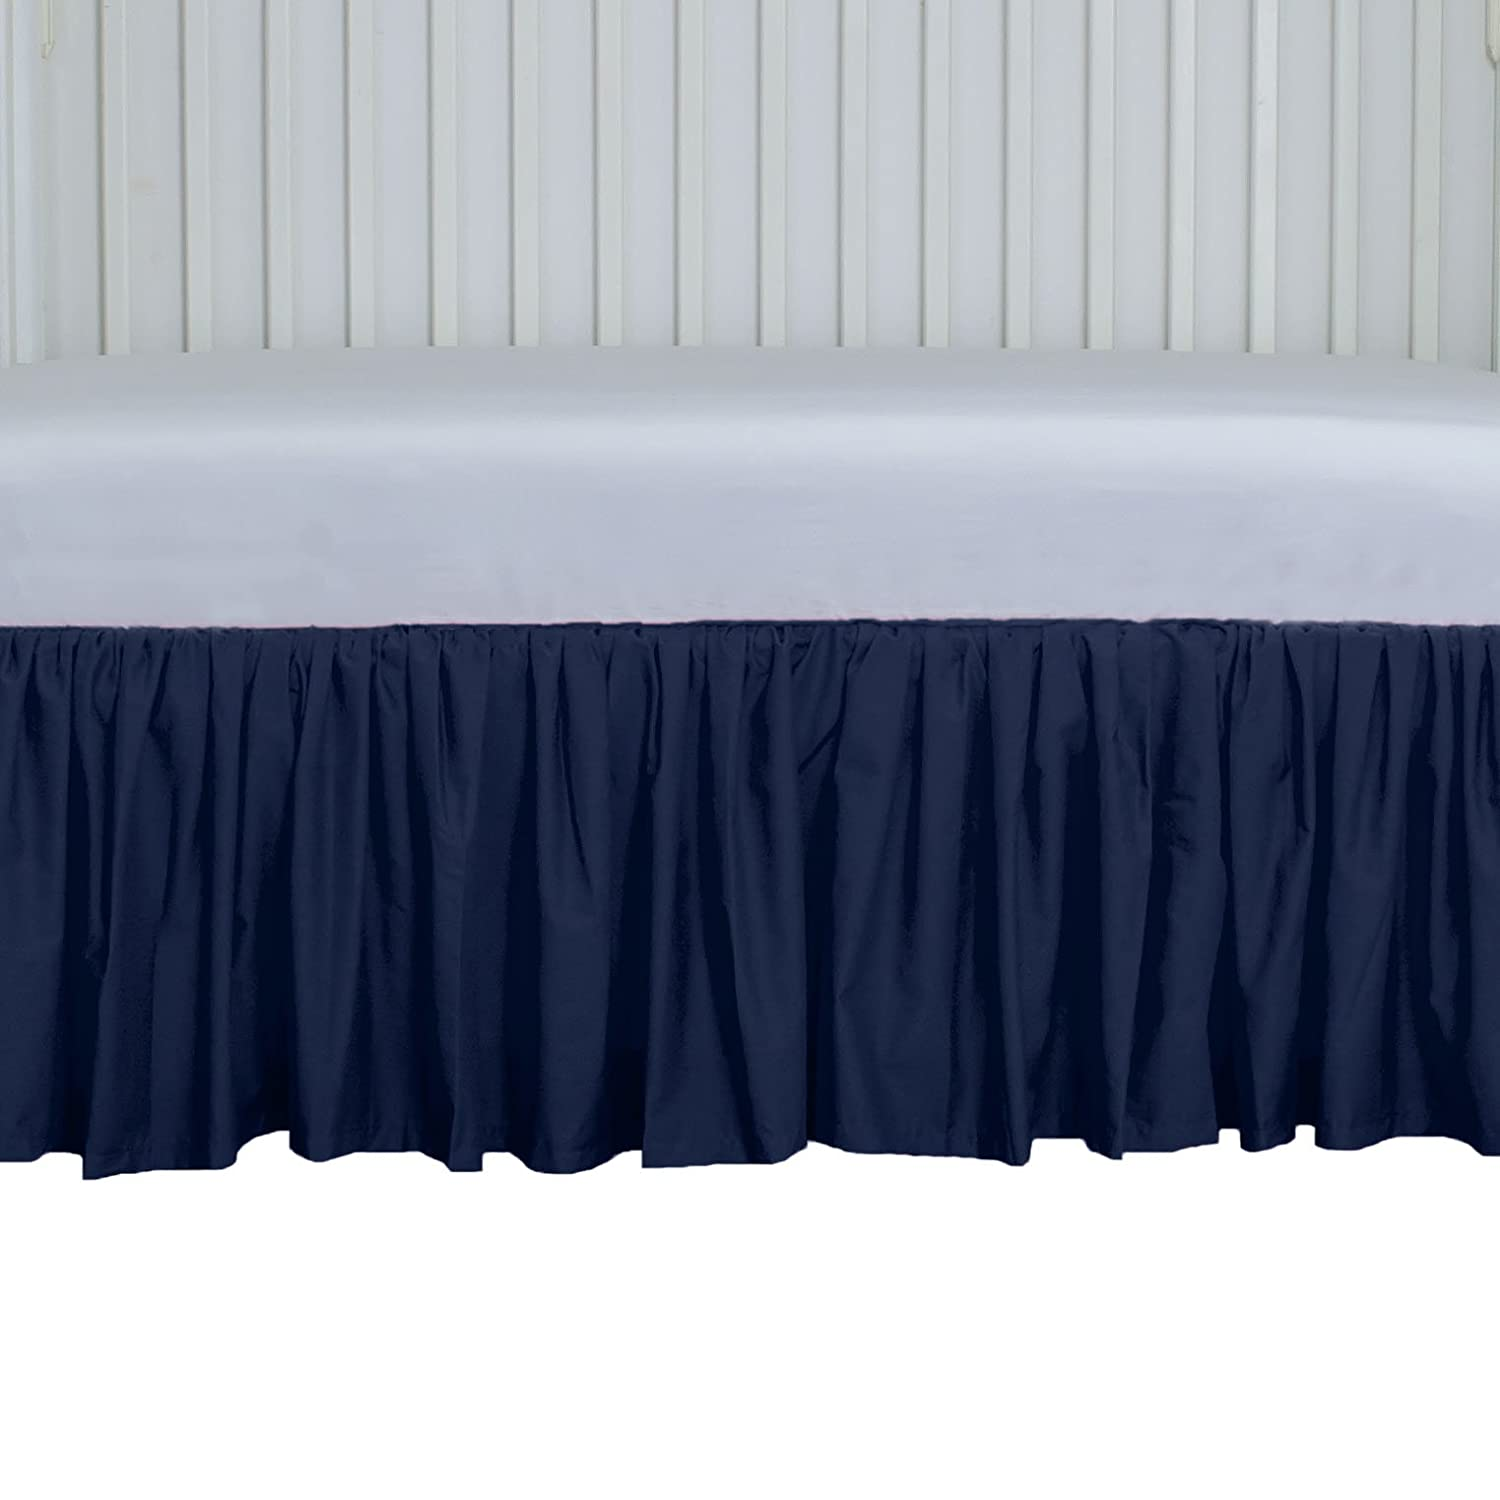 Navy Crib Skirt Gathered 15 inches long 4 sided Allyson Brooke Inc. 352-72105/Crib 15 GTH Navy